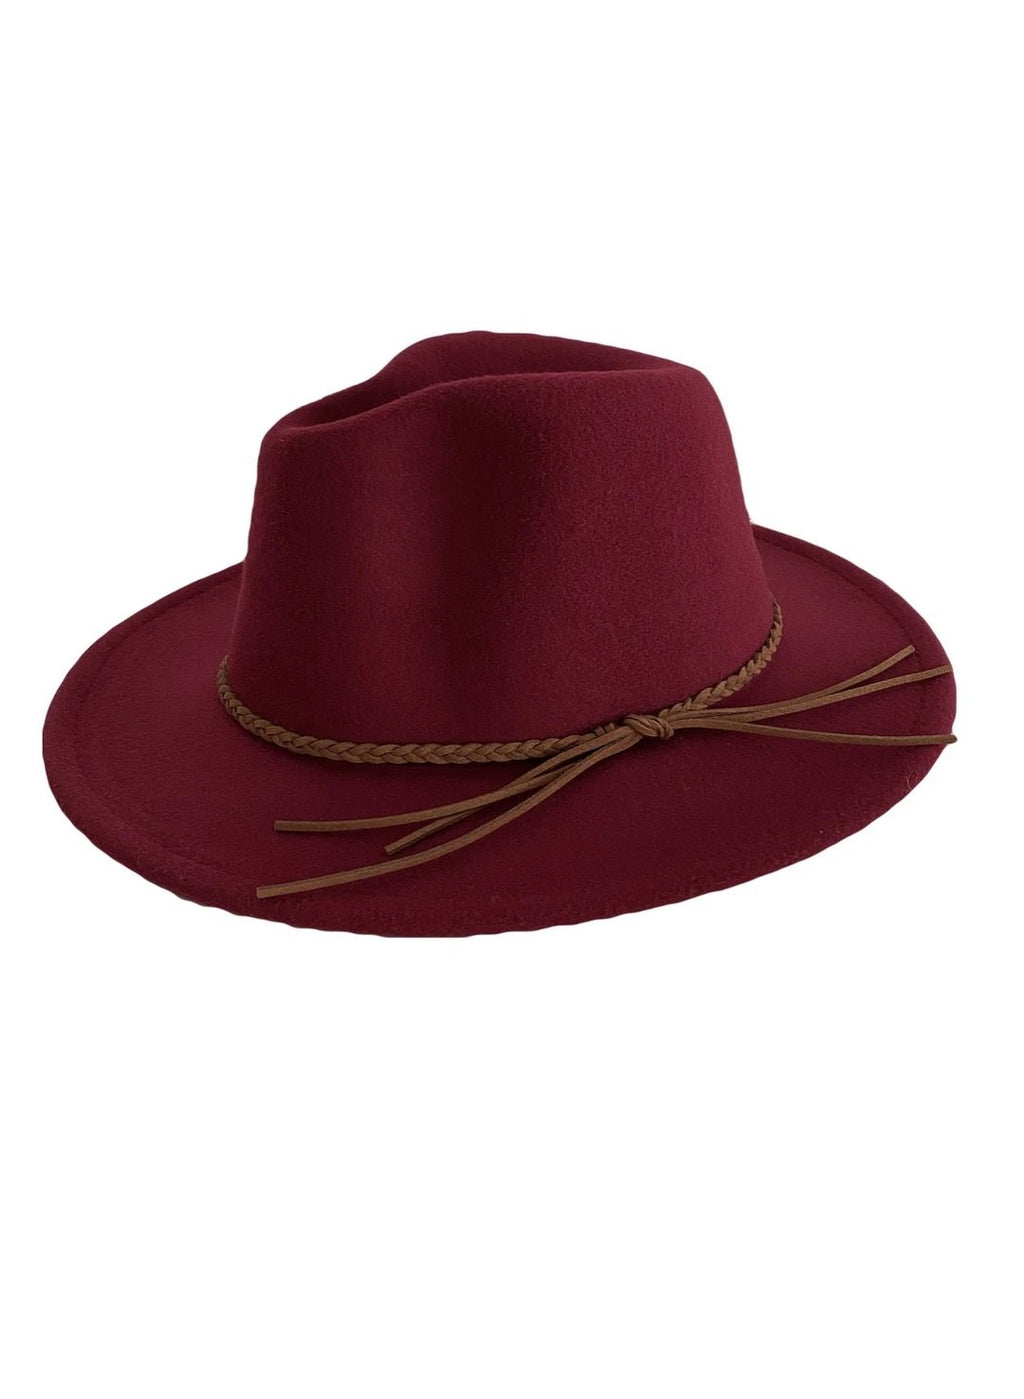 Ballerinas and Boys - Maroon Fedora Kids